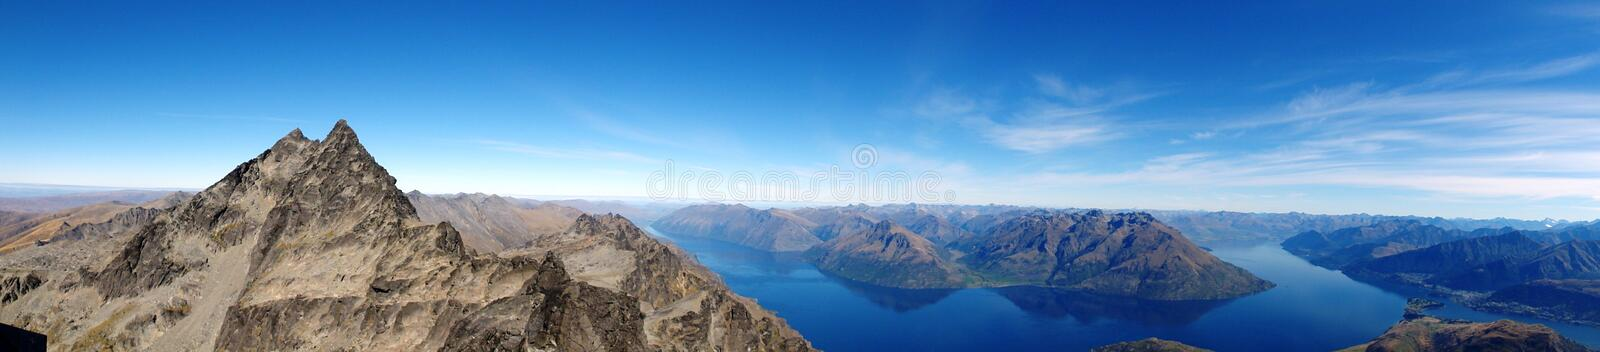 Mountain Top Panoramic royalty free stock photography